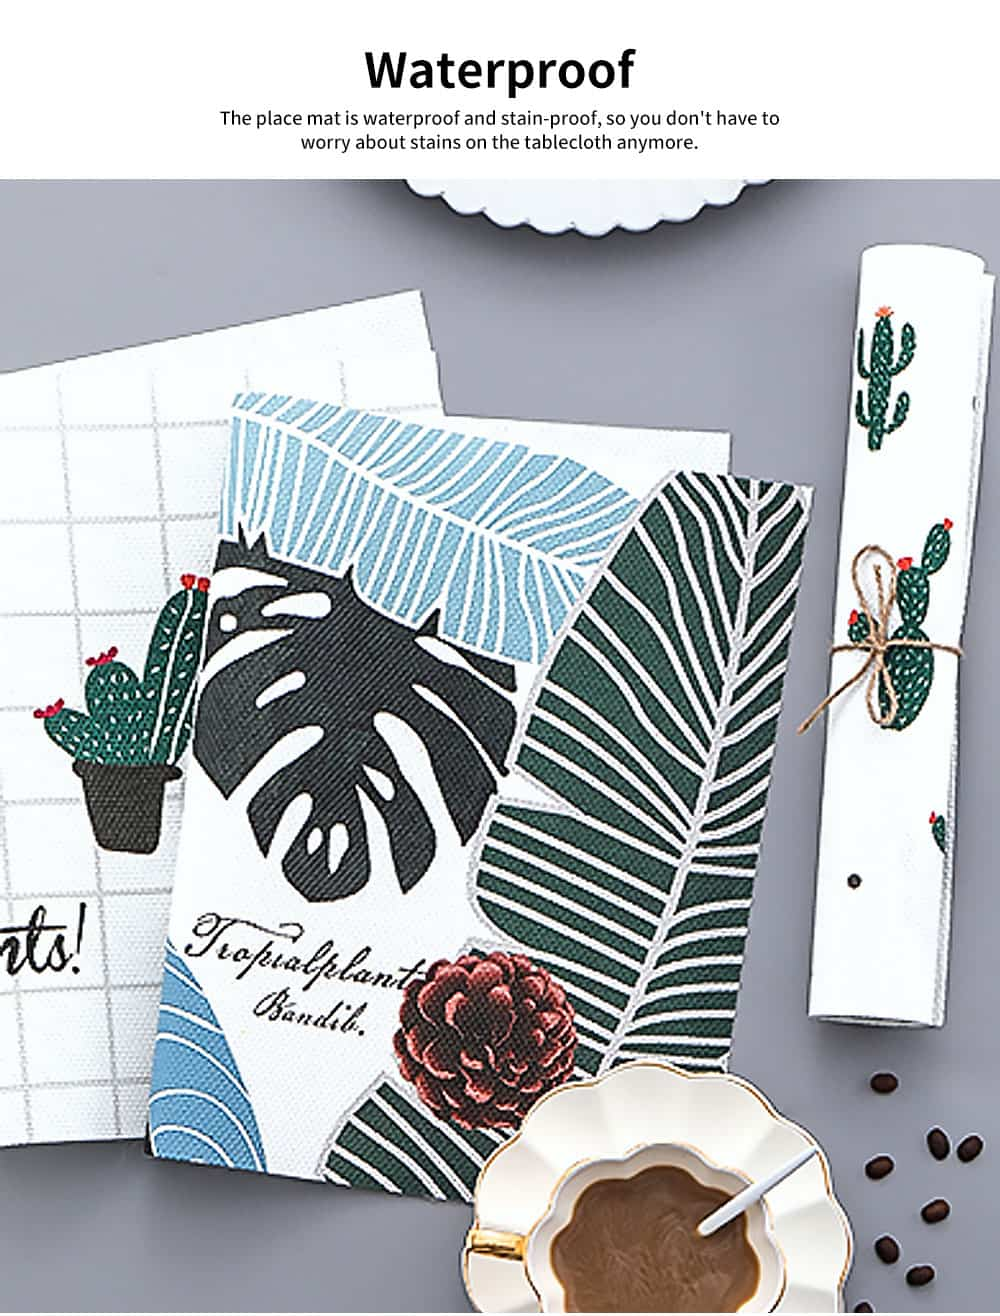 Tropical Plants Creative Bowl Dish Placemat Heat Insulation Waterproof Anti-scald Table Mat 2